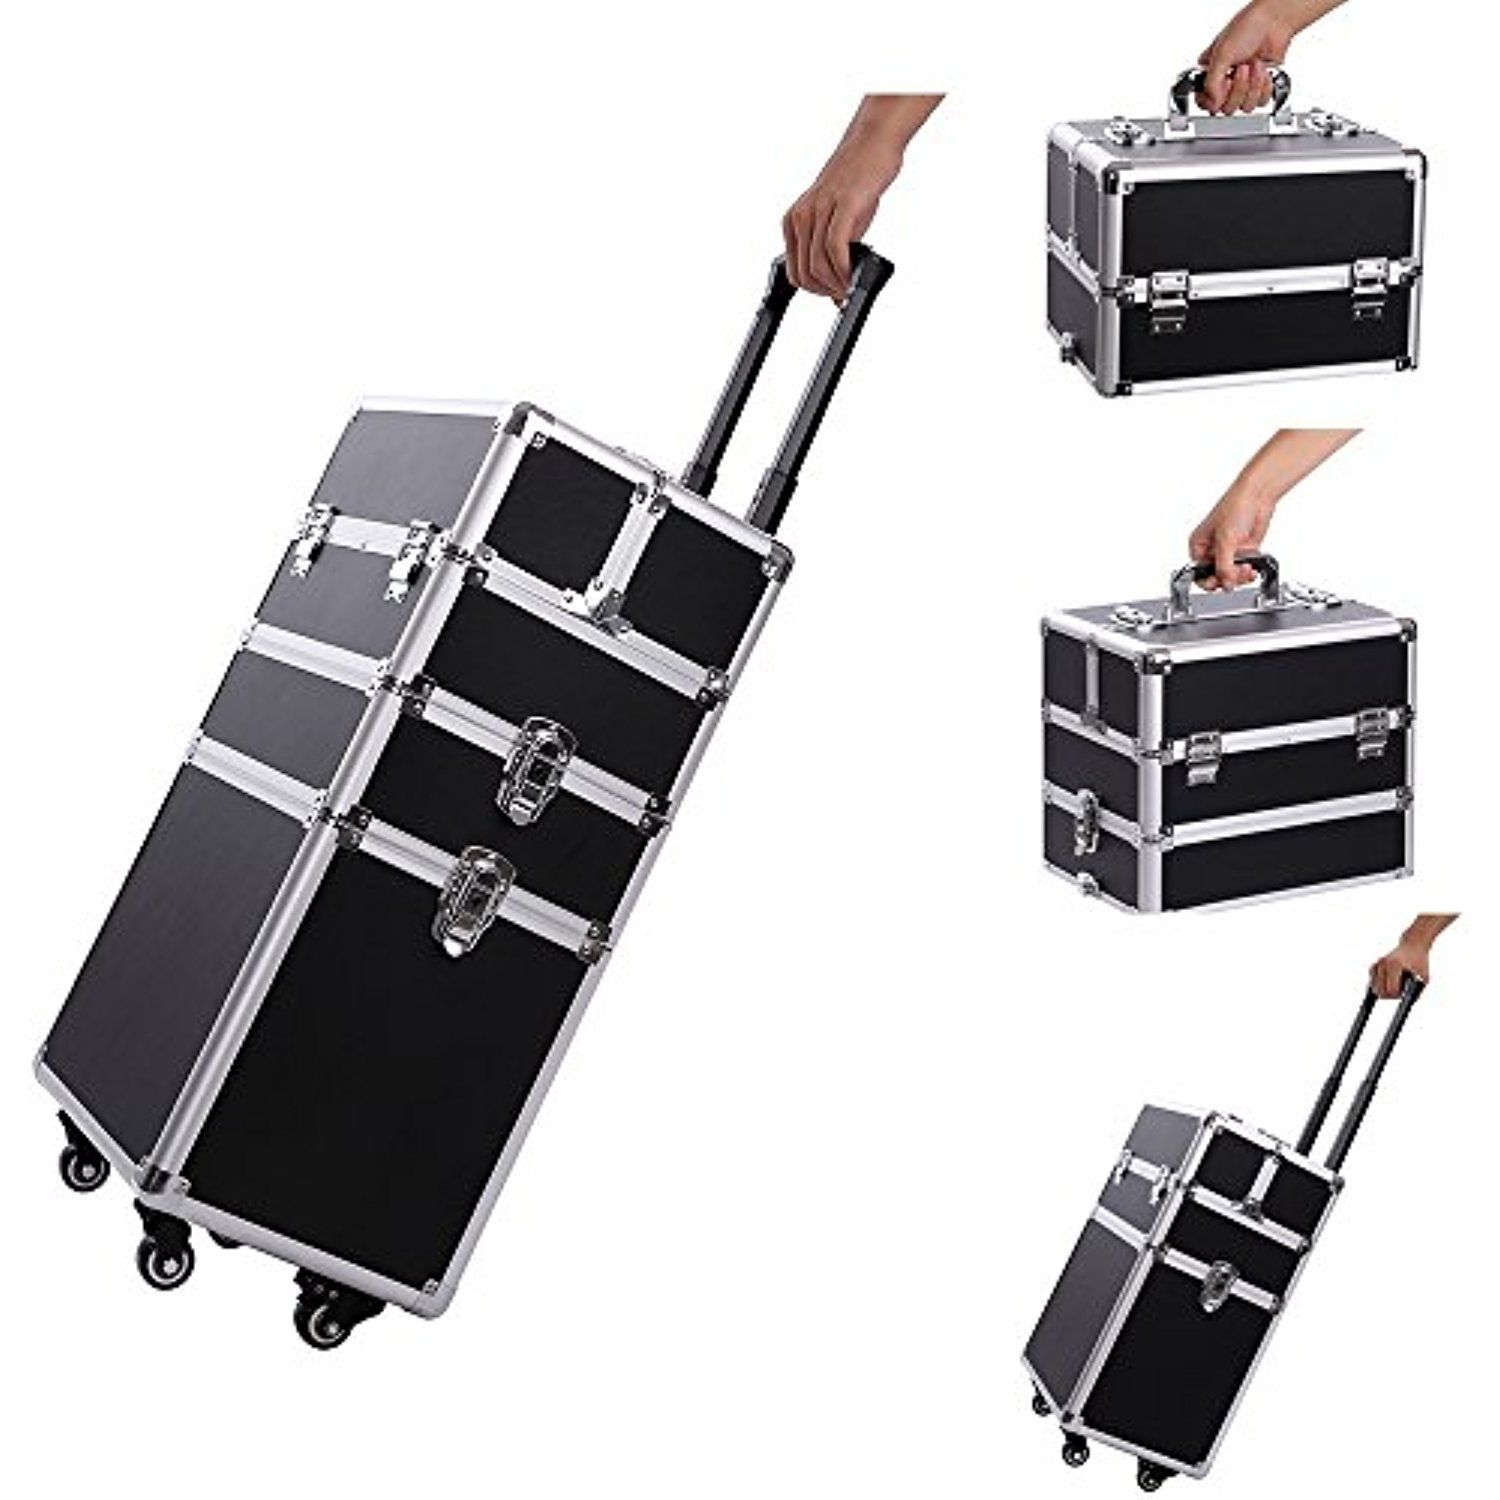 Professional Makeup Train Case,Portable Aluminum Rolling Cosmetic Storage Jewelry Organizer